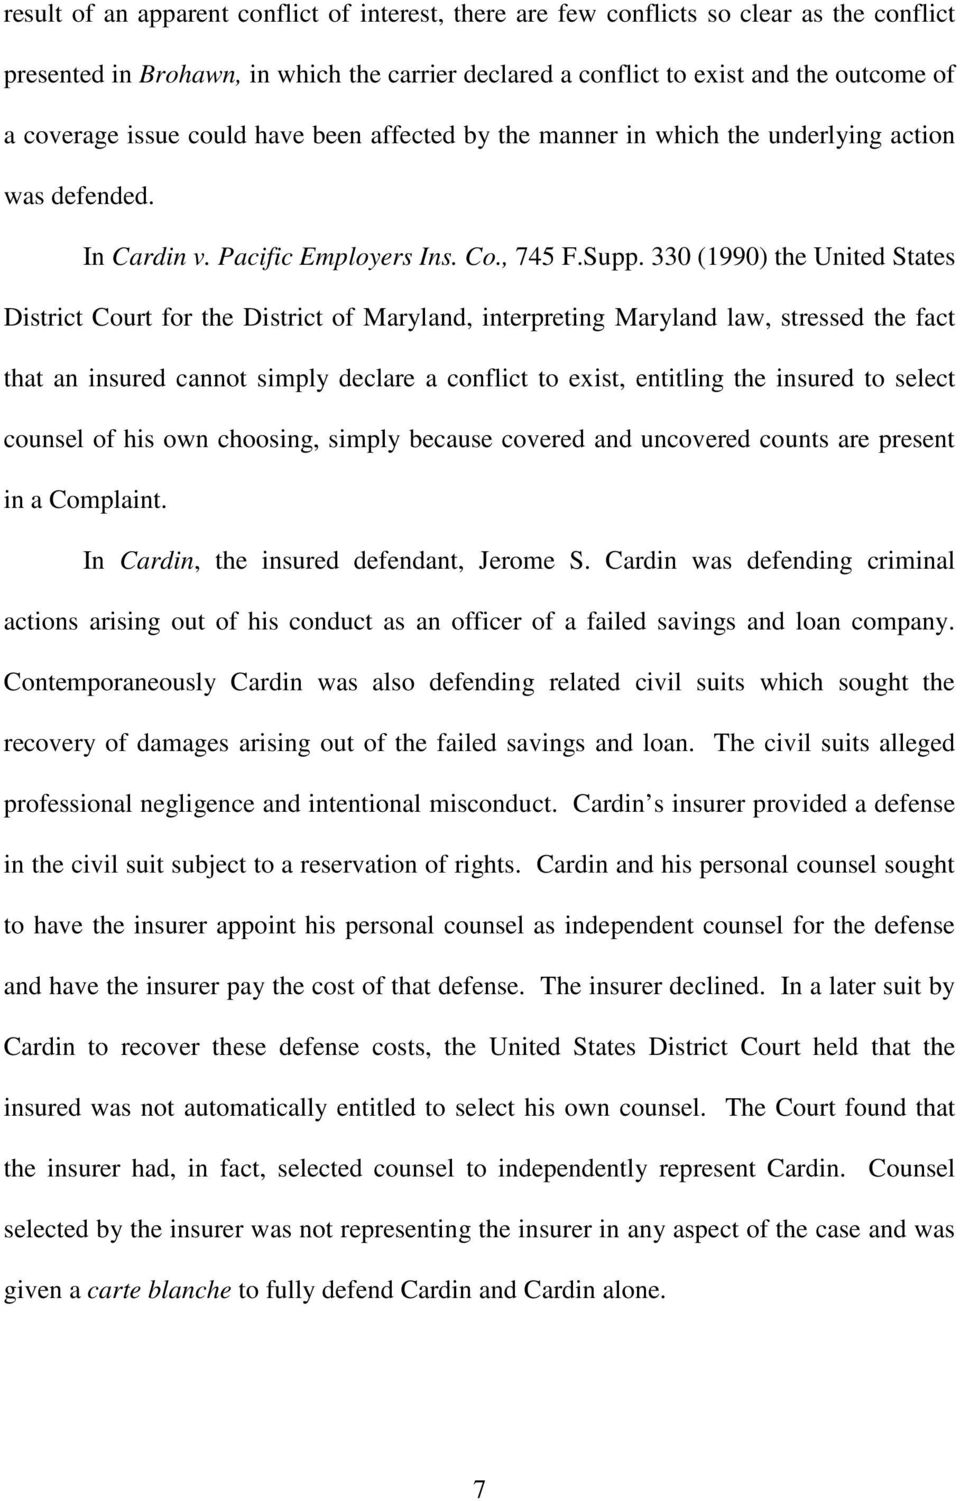 330 (1990) the United States District Court for the District of Maryland, interpreting Maryland law, stressed the fact that an insured cannot simply declare a conflict to exist, entitling the insured